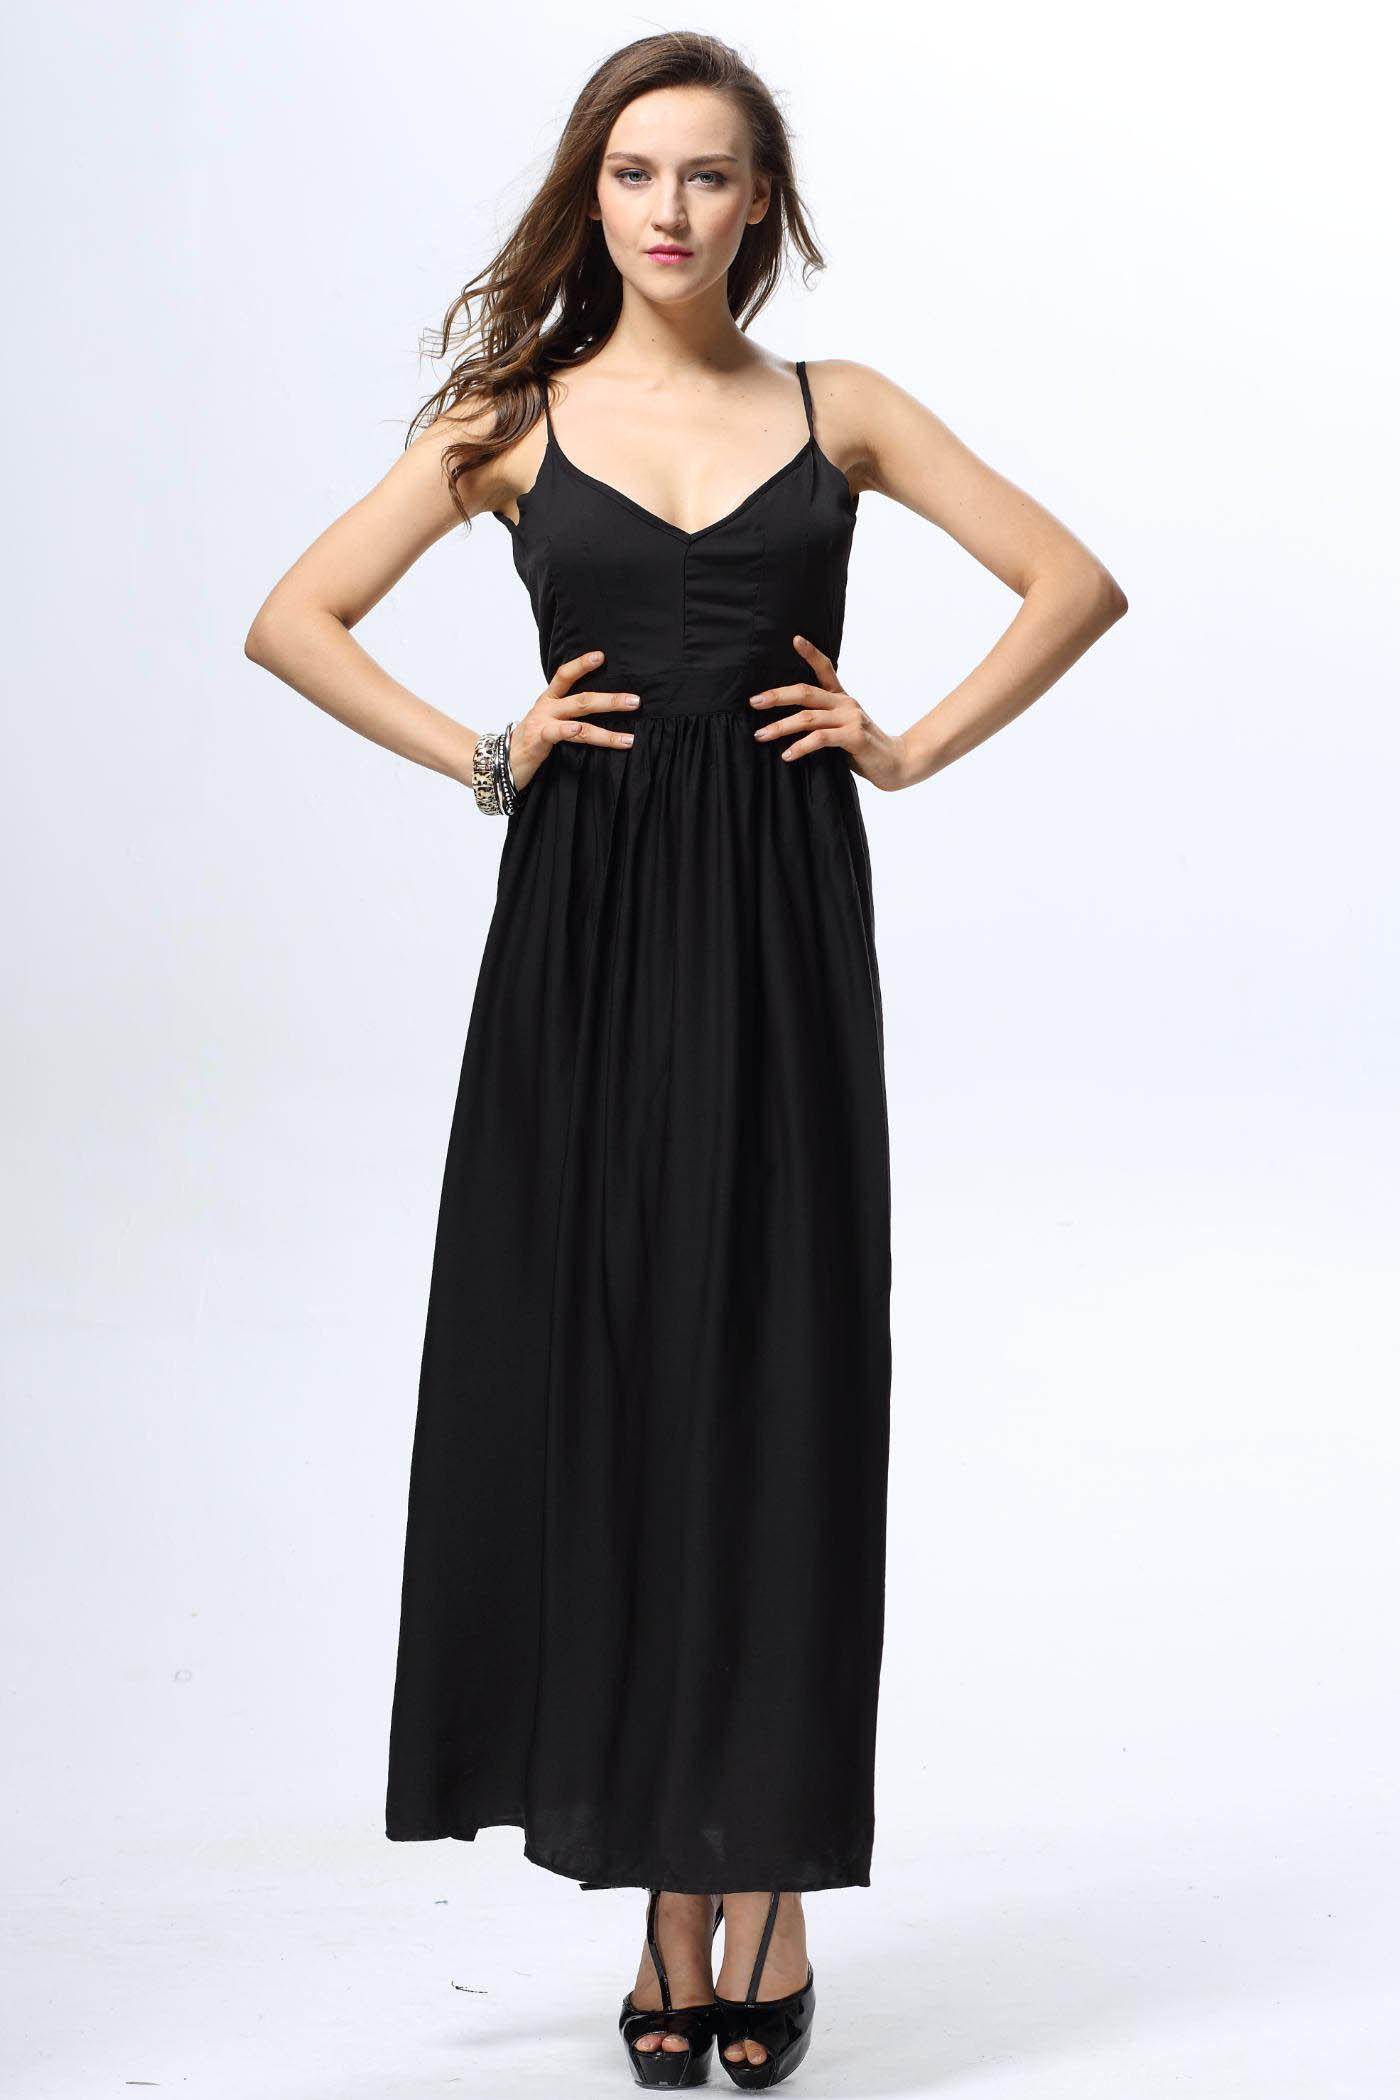 Solid Color Backless Spaghetti Straps Plunging Neck Elegant Style Women's Dress - BLACK S